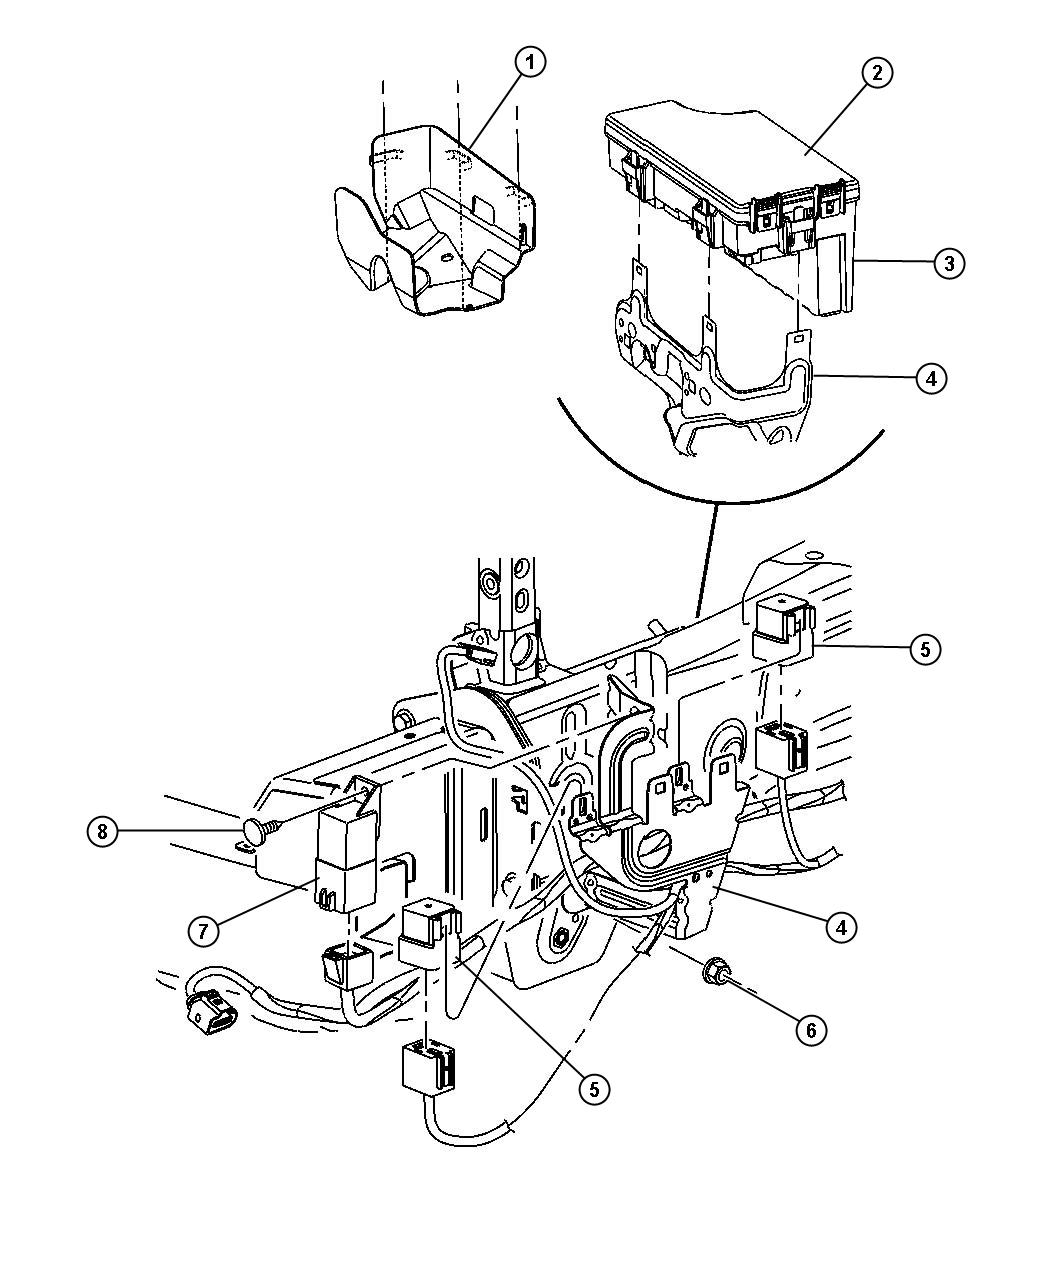 Dorman Ignition Switch Wiring Diagram, Dorman, Free Engine